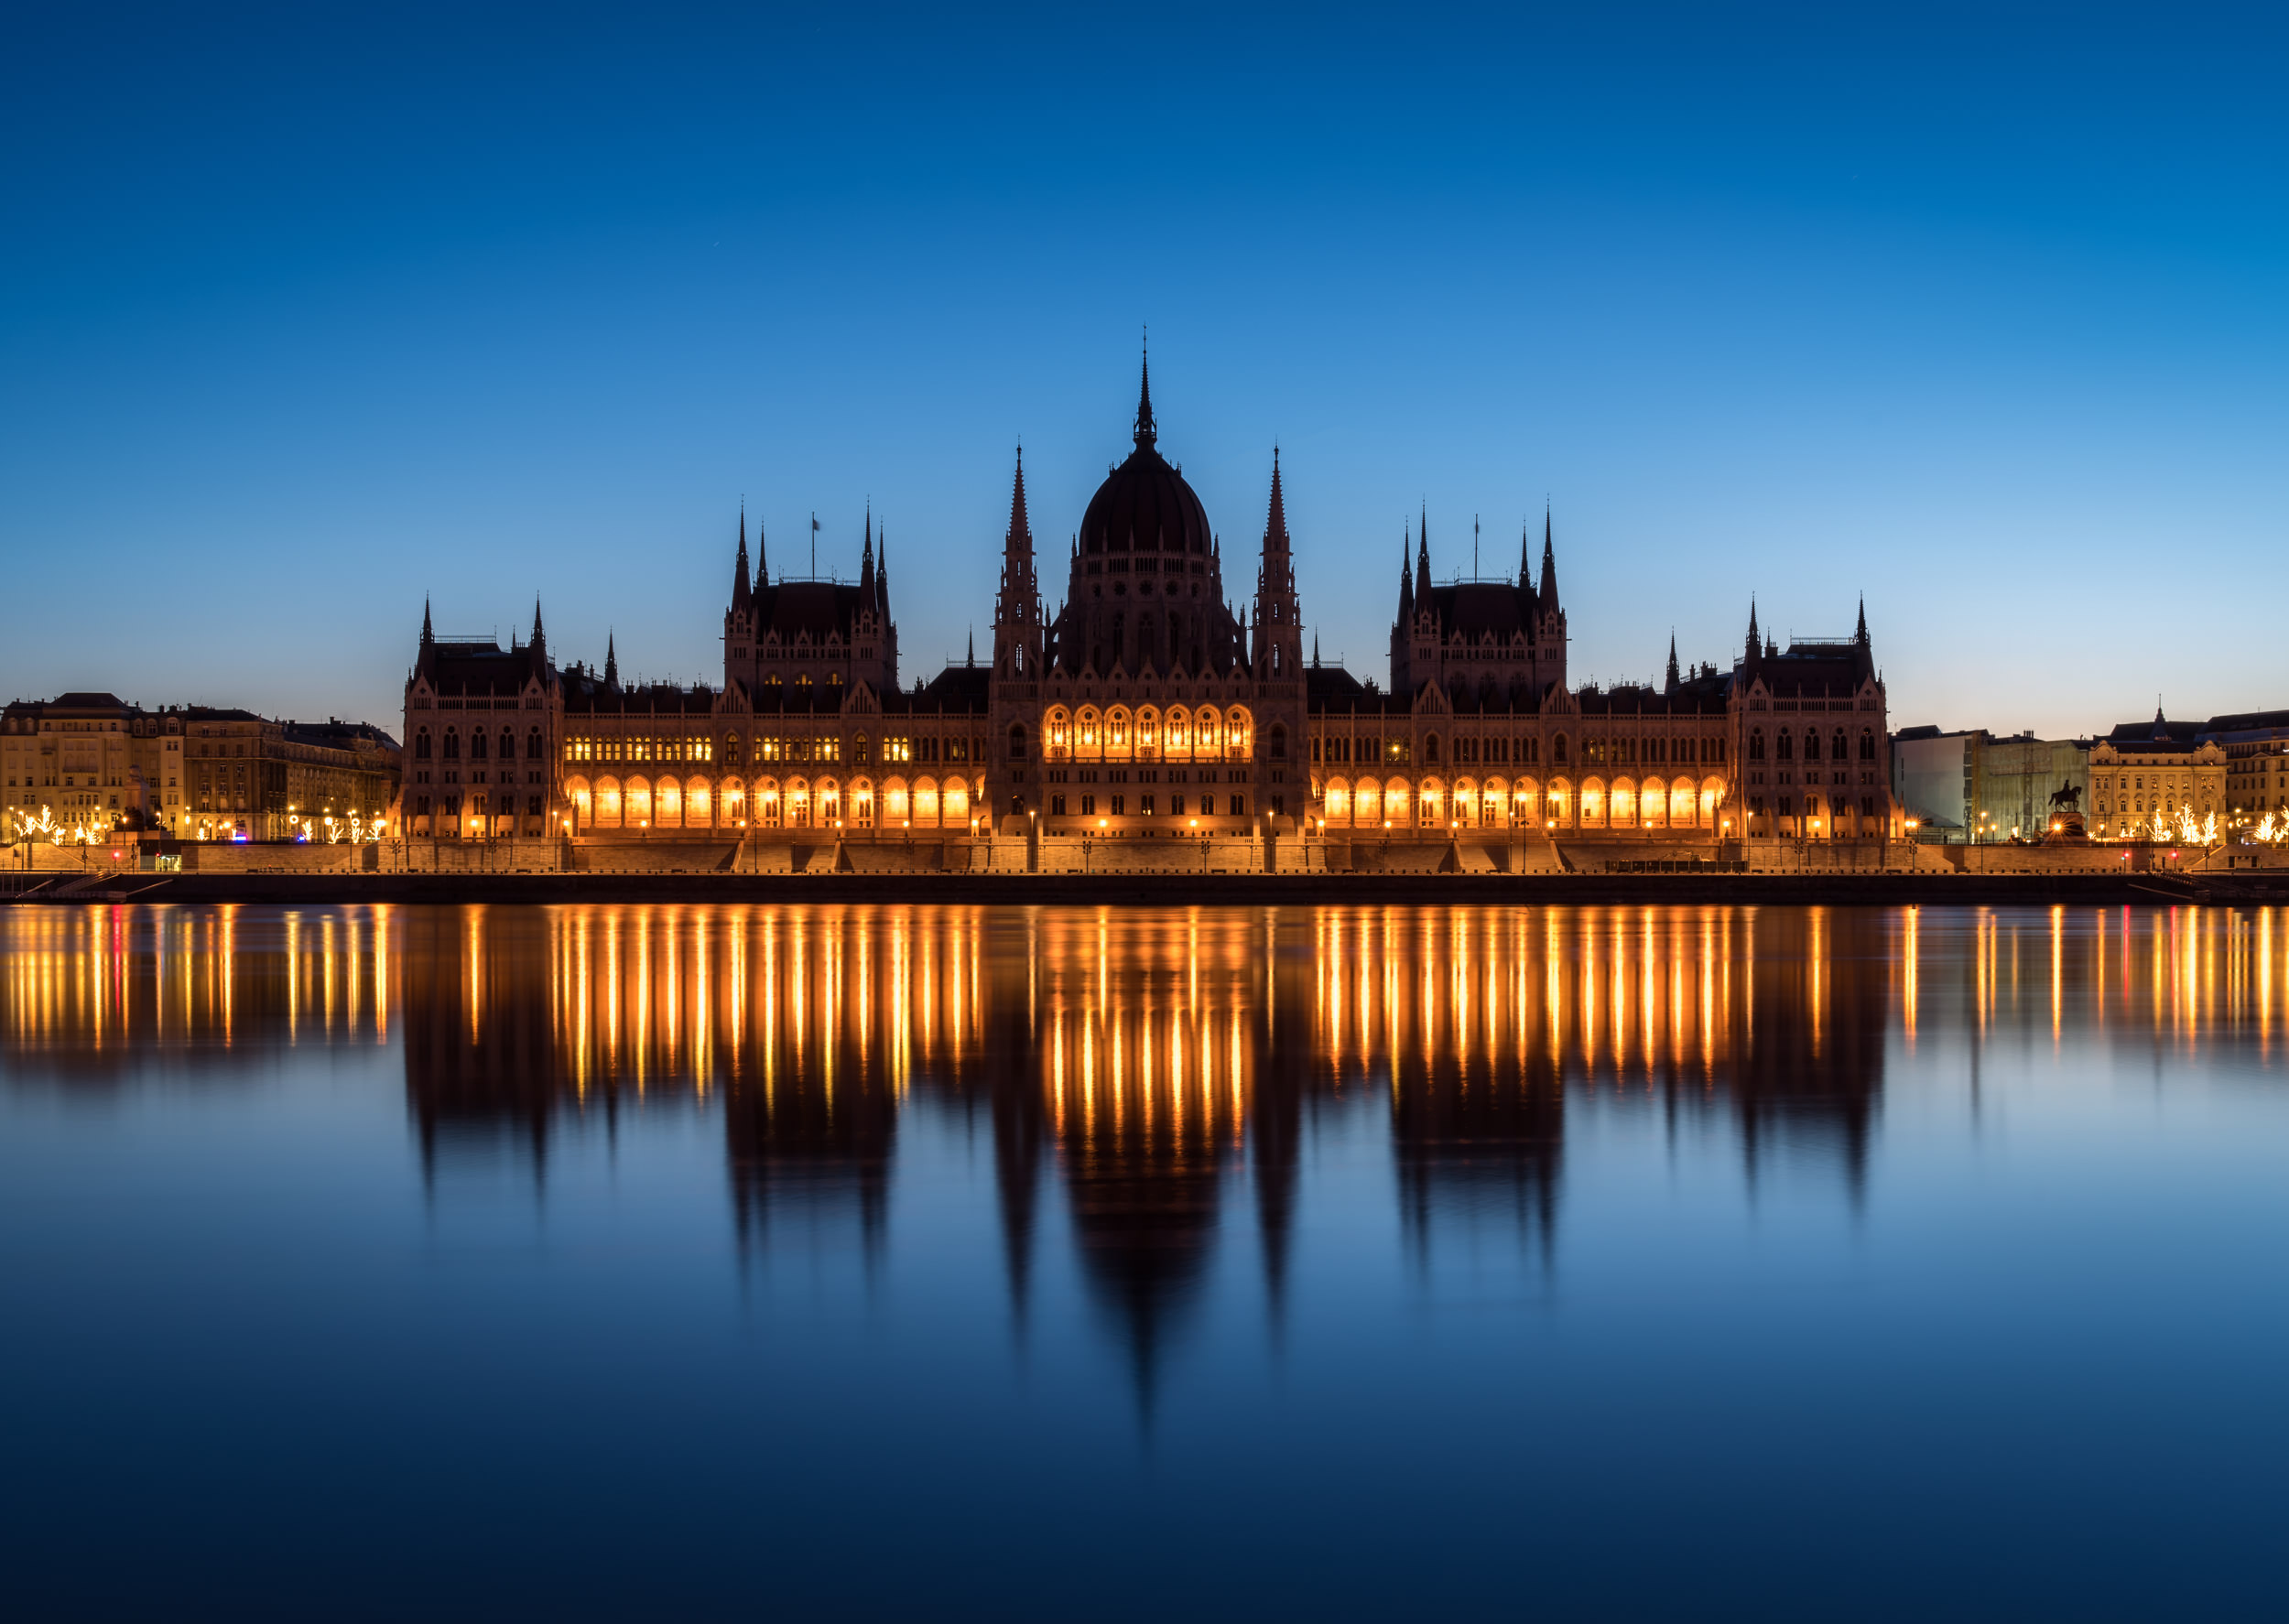 Parliament Building - Budapest, Hungary - City & Architecture Photography